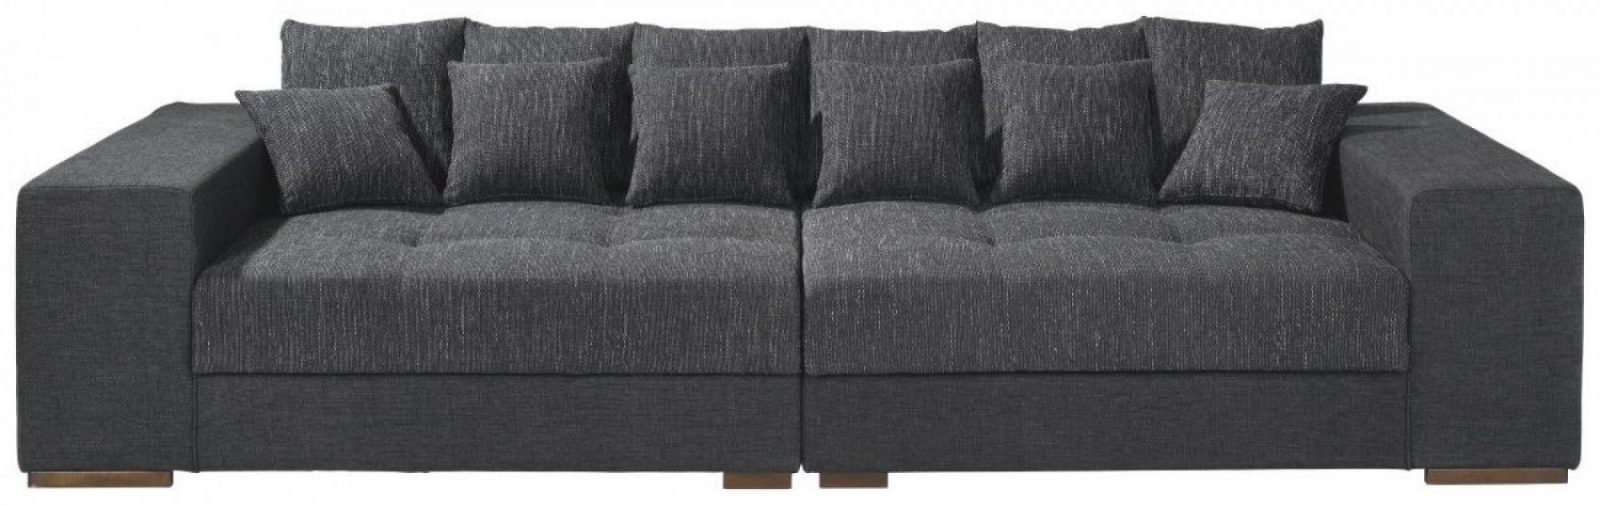 Poco Domäne Big Sofa Angebot  Thecreativescientist von Big Sofa Poco Domäne Photo